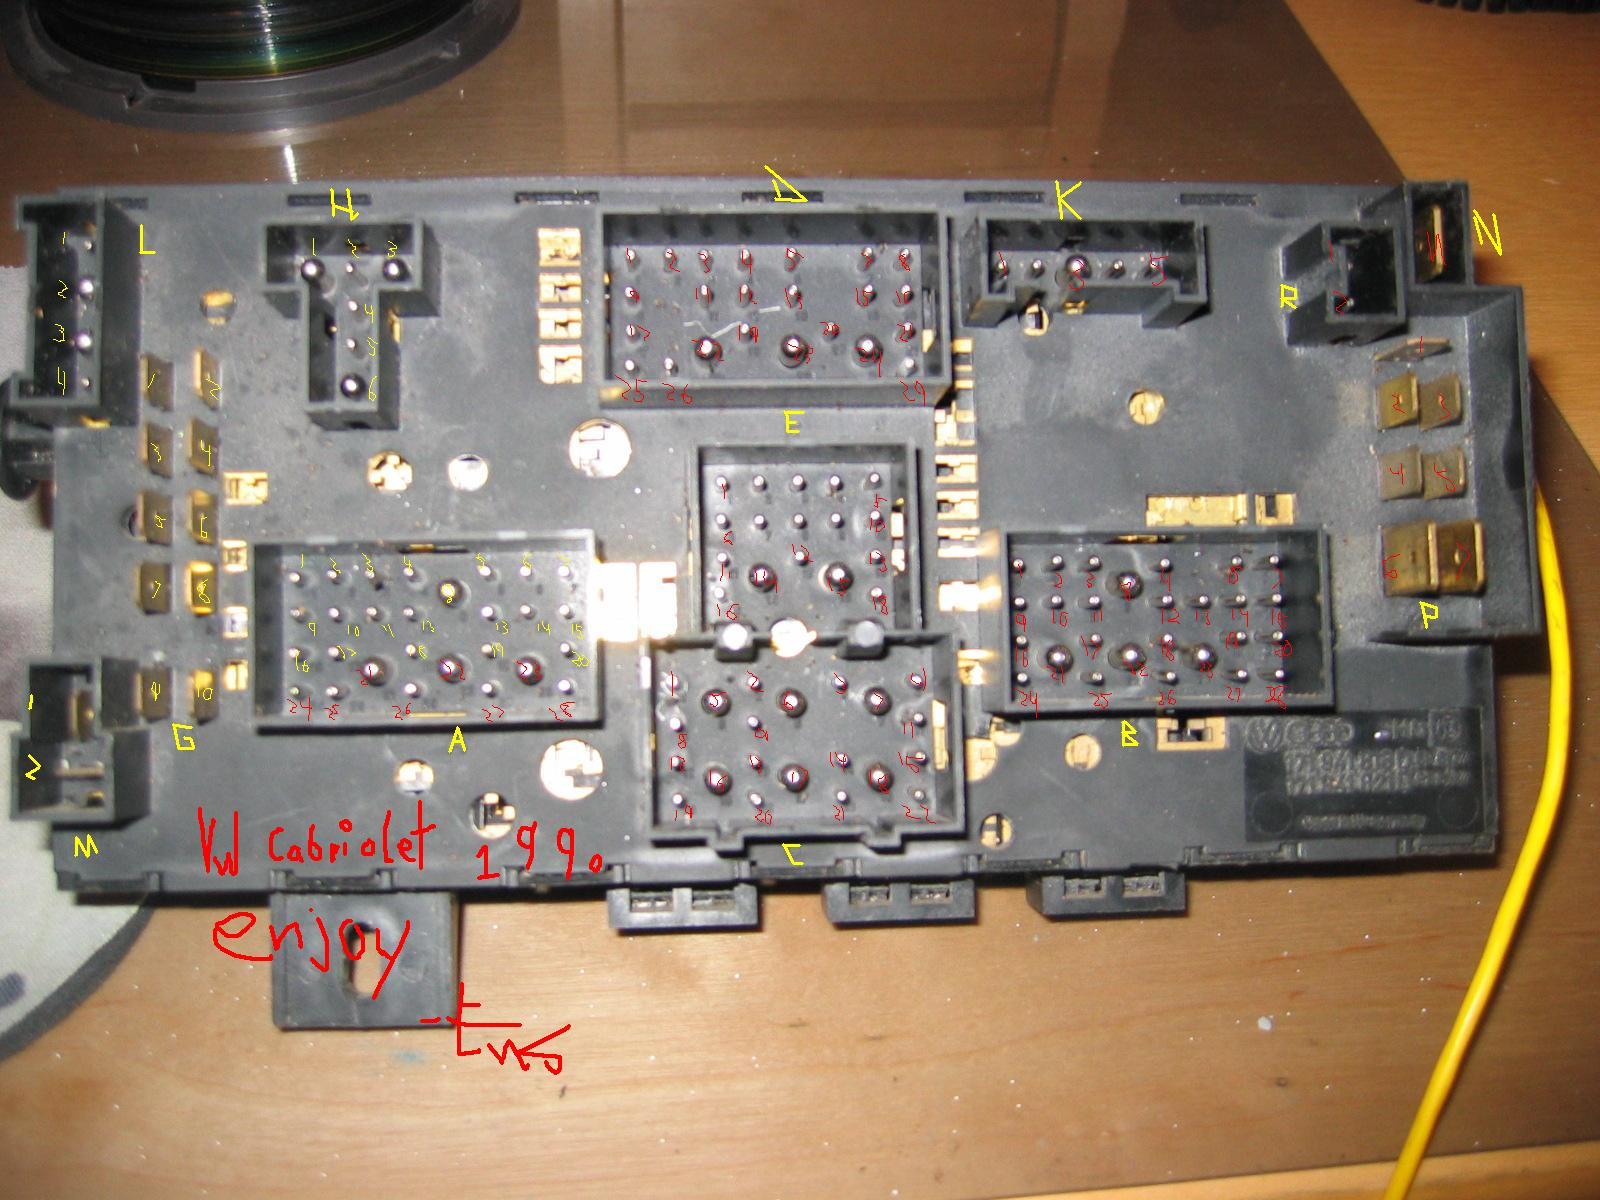 Audi Cabriolet Fuse Box Books Of Wiring Diagram A3 Vwvortex Com 1988 89 Euro Spec Rh Forums 80 1998